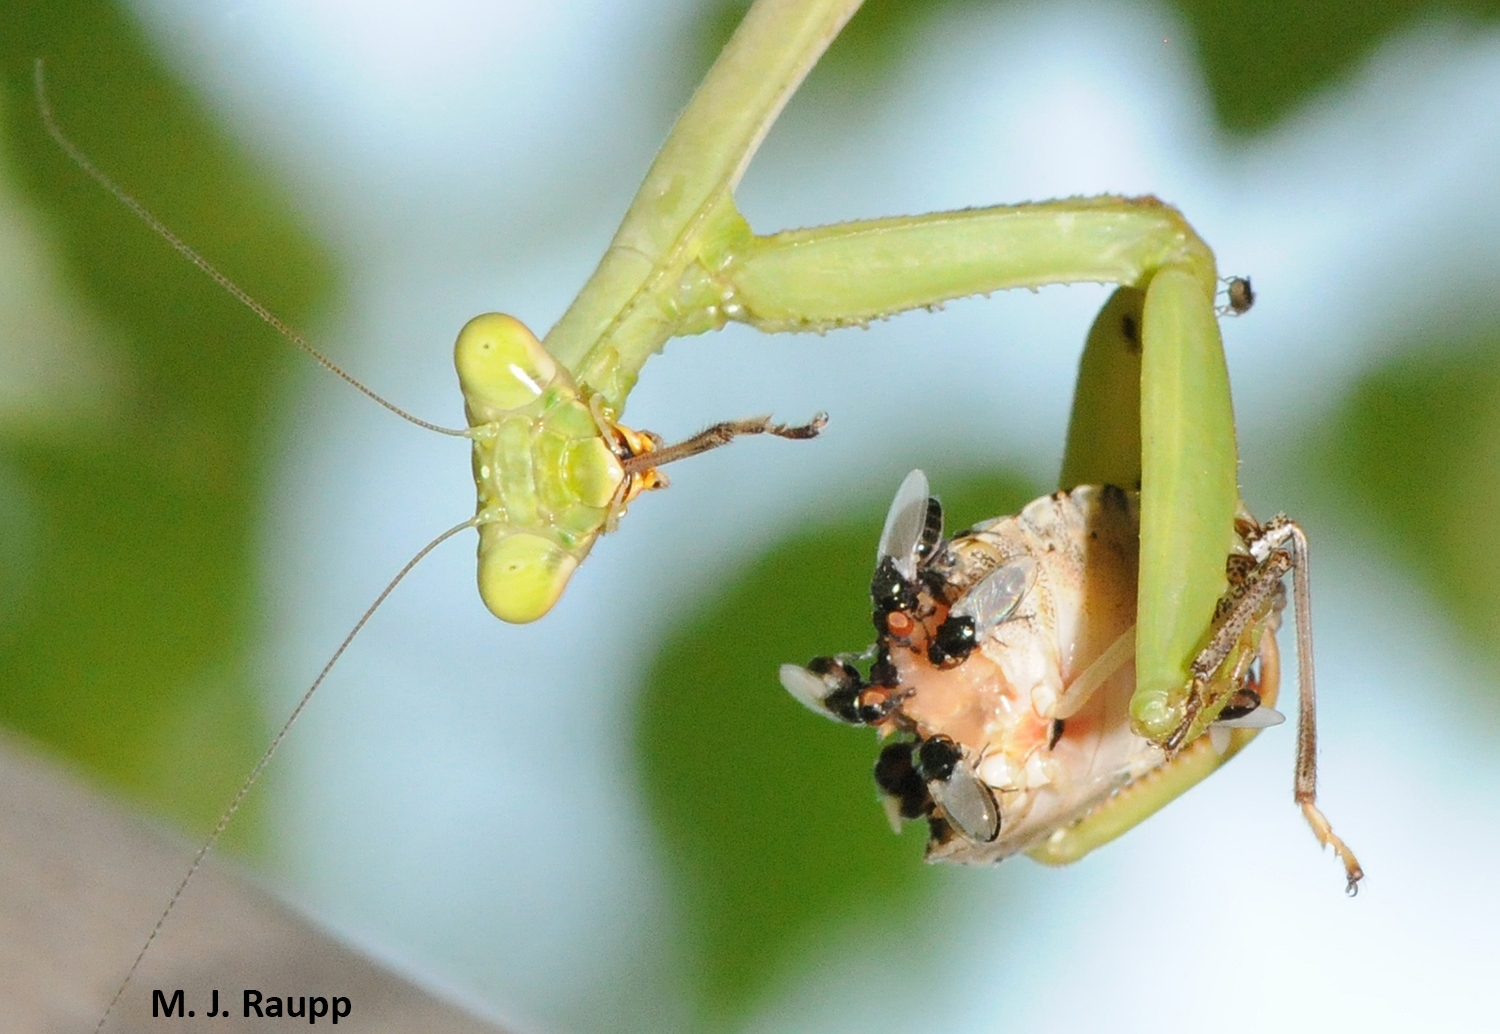 This European mantis finds brown marmorated stink bugs delicious. Mantises are part of Mother Nature's hit squad turning back the tide of invasive pests.